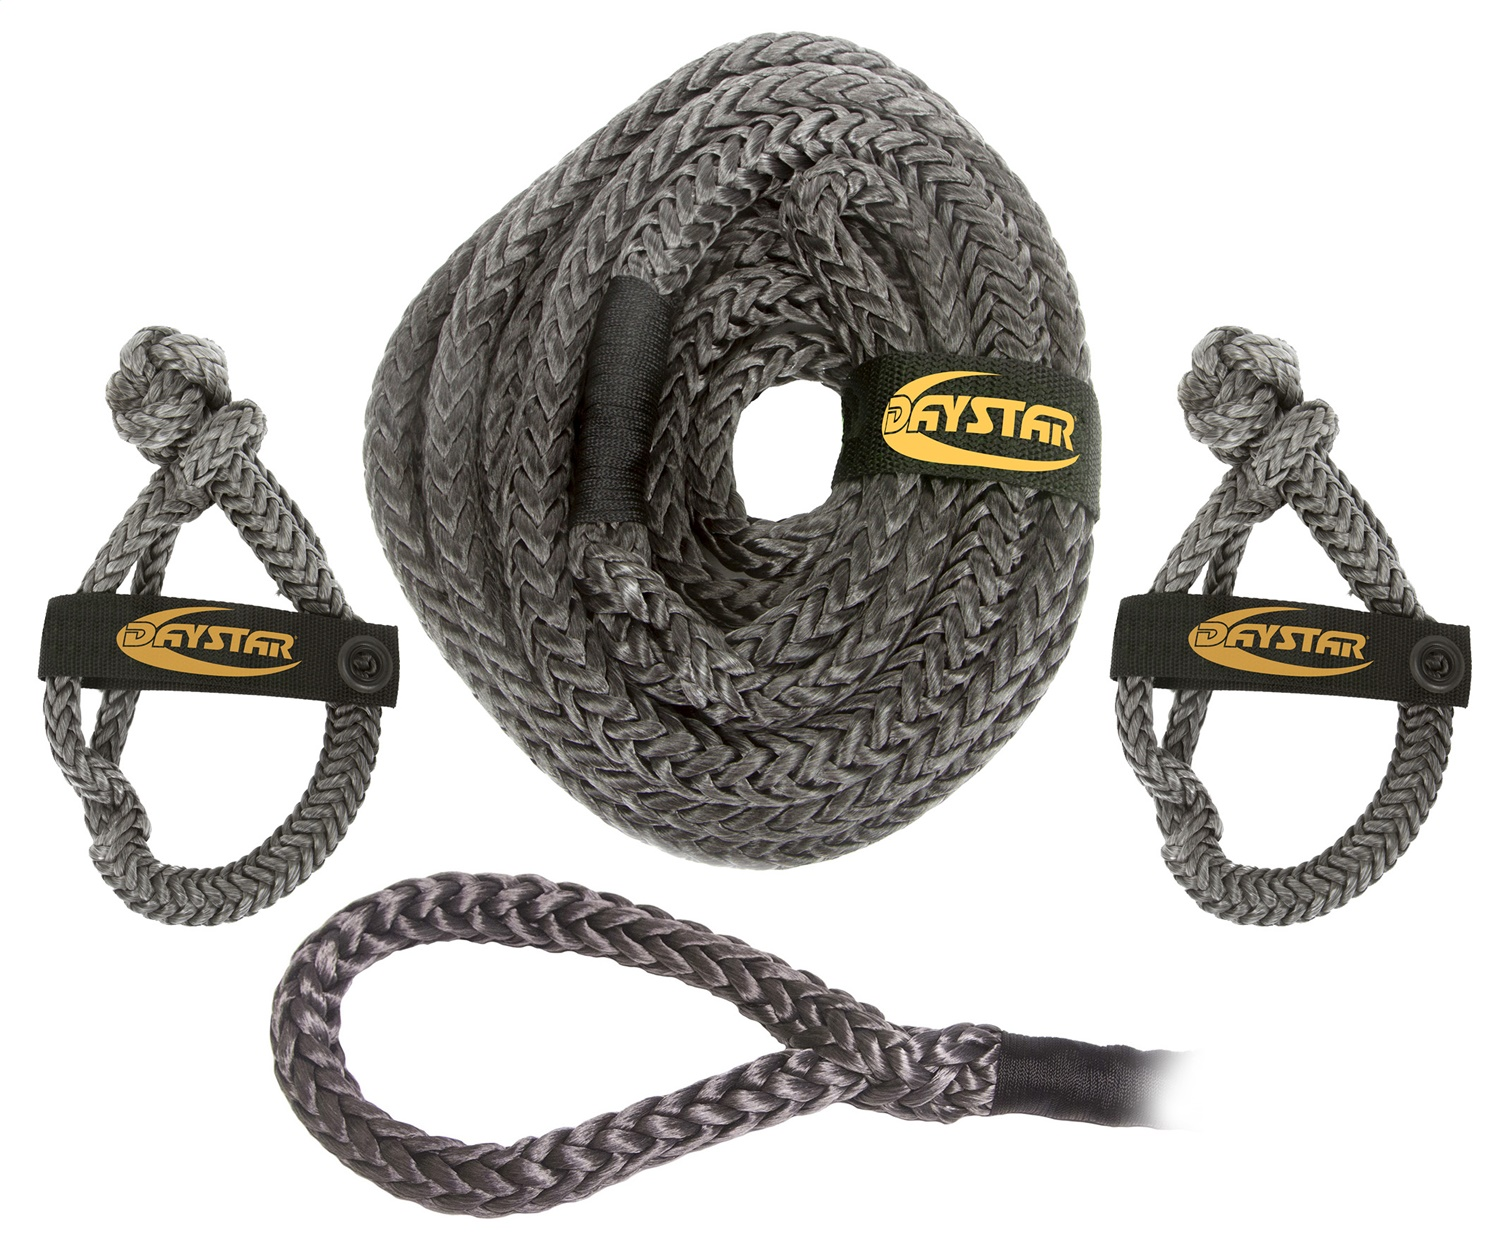 Daystar KU10205BK Rope And Shackles Kit